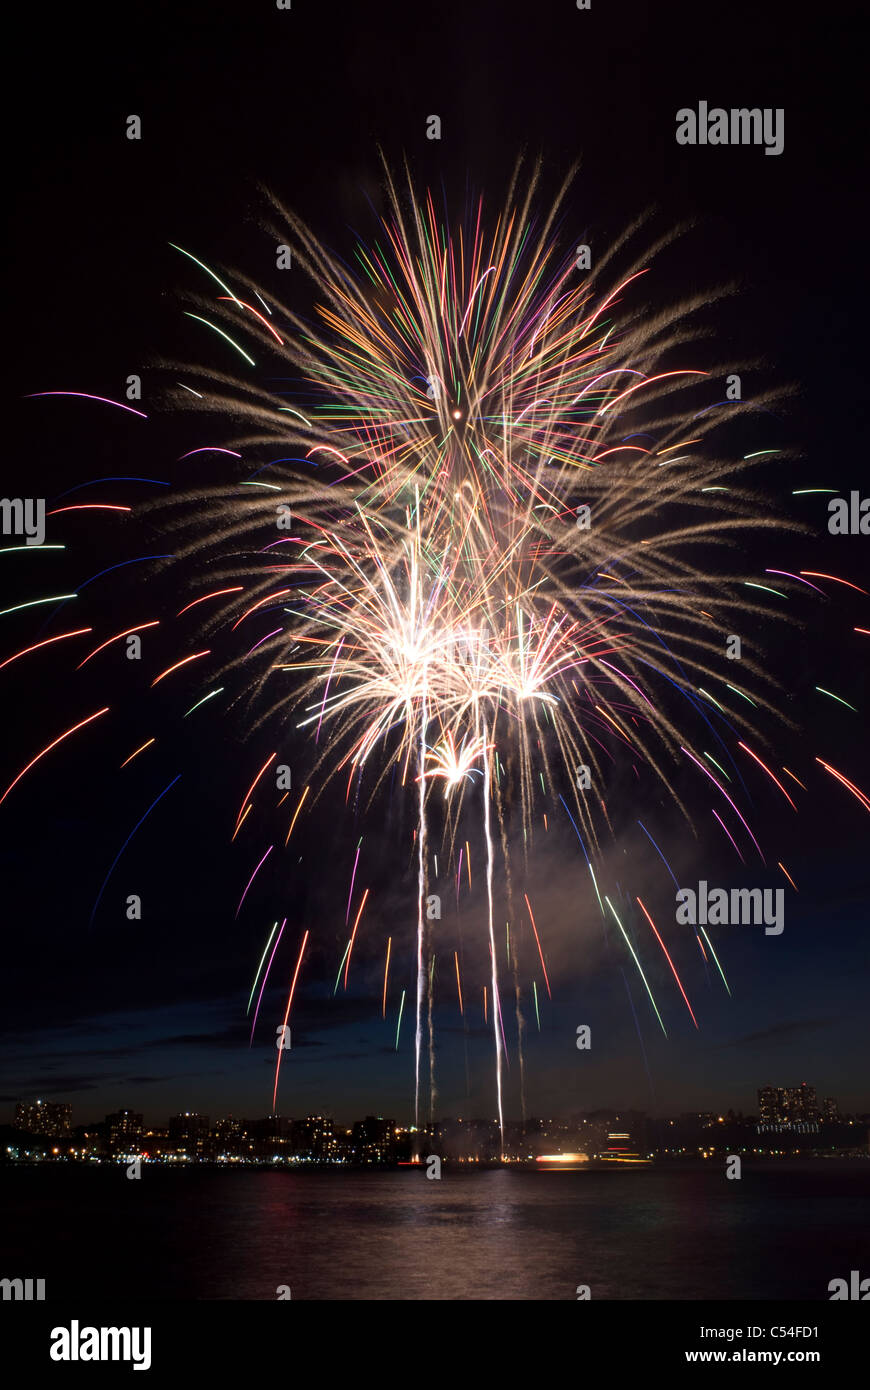 Spectacular capture of Macy's July 4th, 2011 fireworks show on the Hudson River in New York City. © Craig - Stock Image